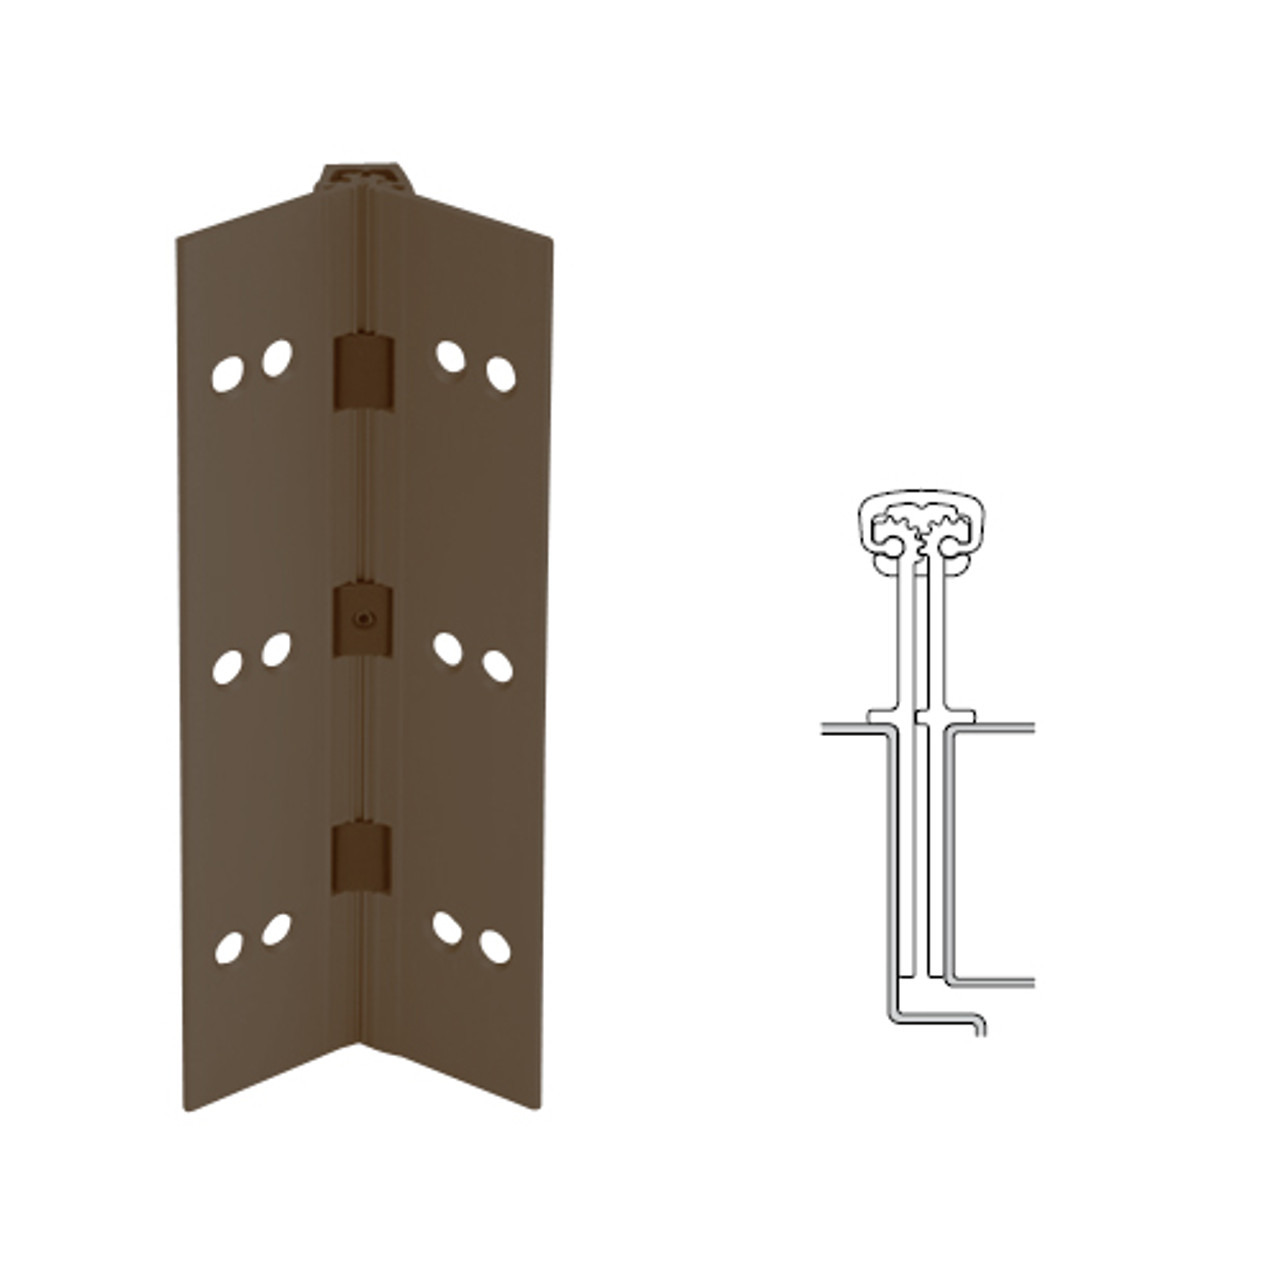 040XY-313AN-83-SECWDHM IVES Full Mortise Continuous Geared Hinges with Security Screws - Hex Pin Drive in Dark Bronze Anodized